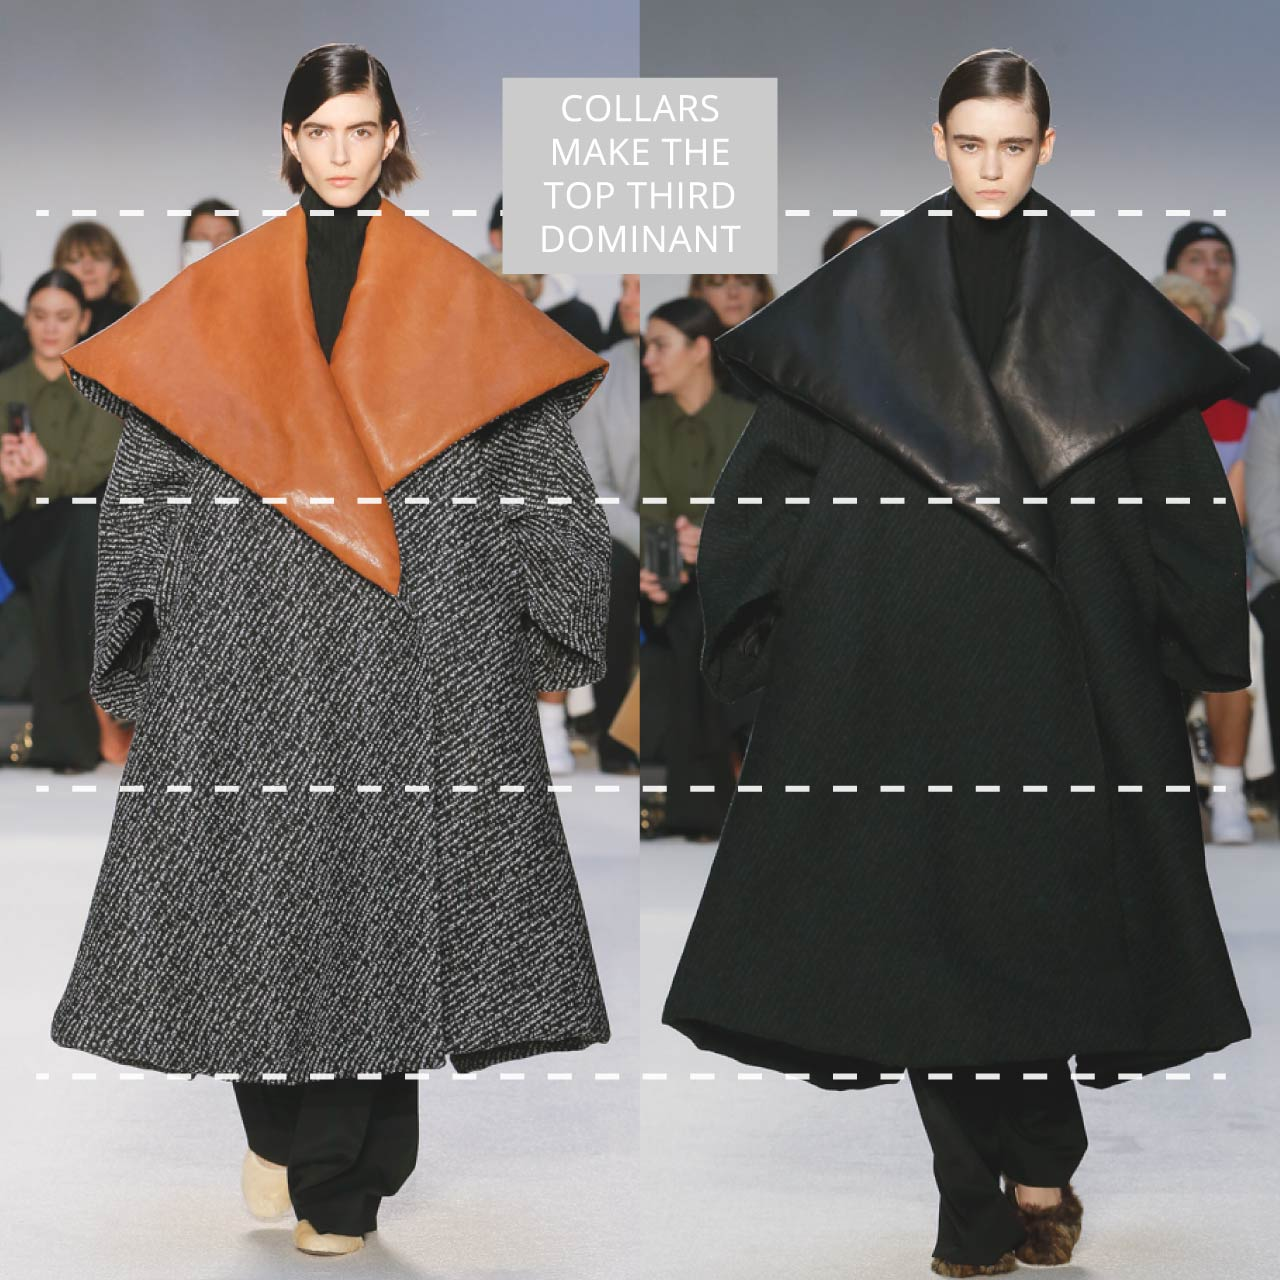 The Rule of Thirds Applied to JW Anderson | The Cutting Class. Collars make the top third dominant. AW20.